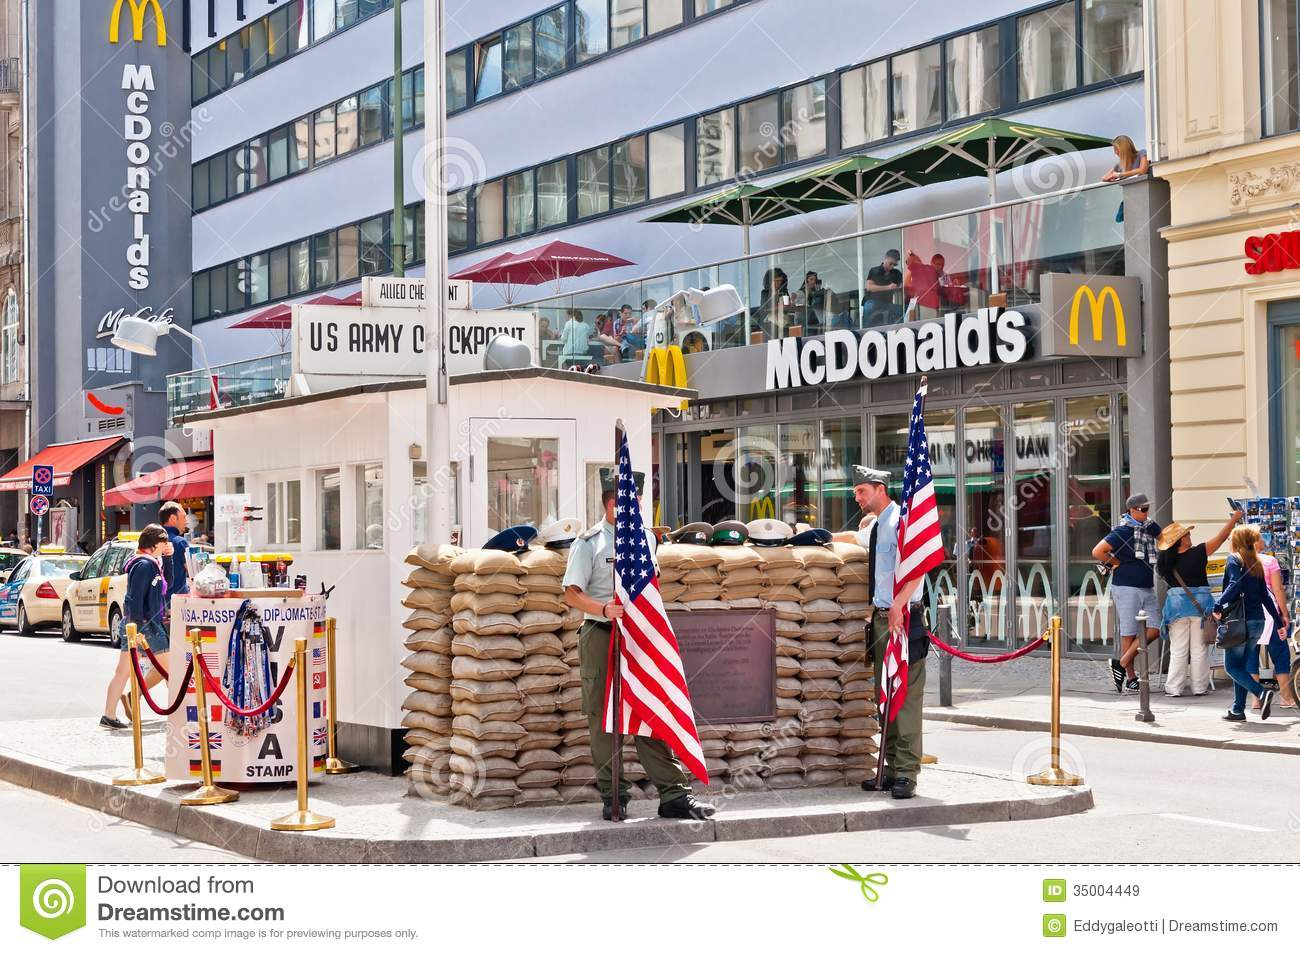 border cross checkpoint charlie in berlin editorial stock image image of charlie heritage. Black Bedroom Furniture Sets. Home Design Ideas